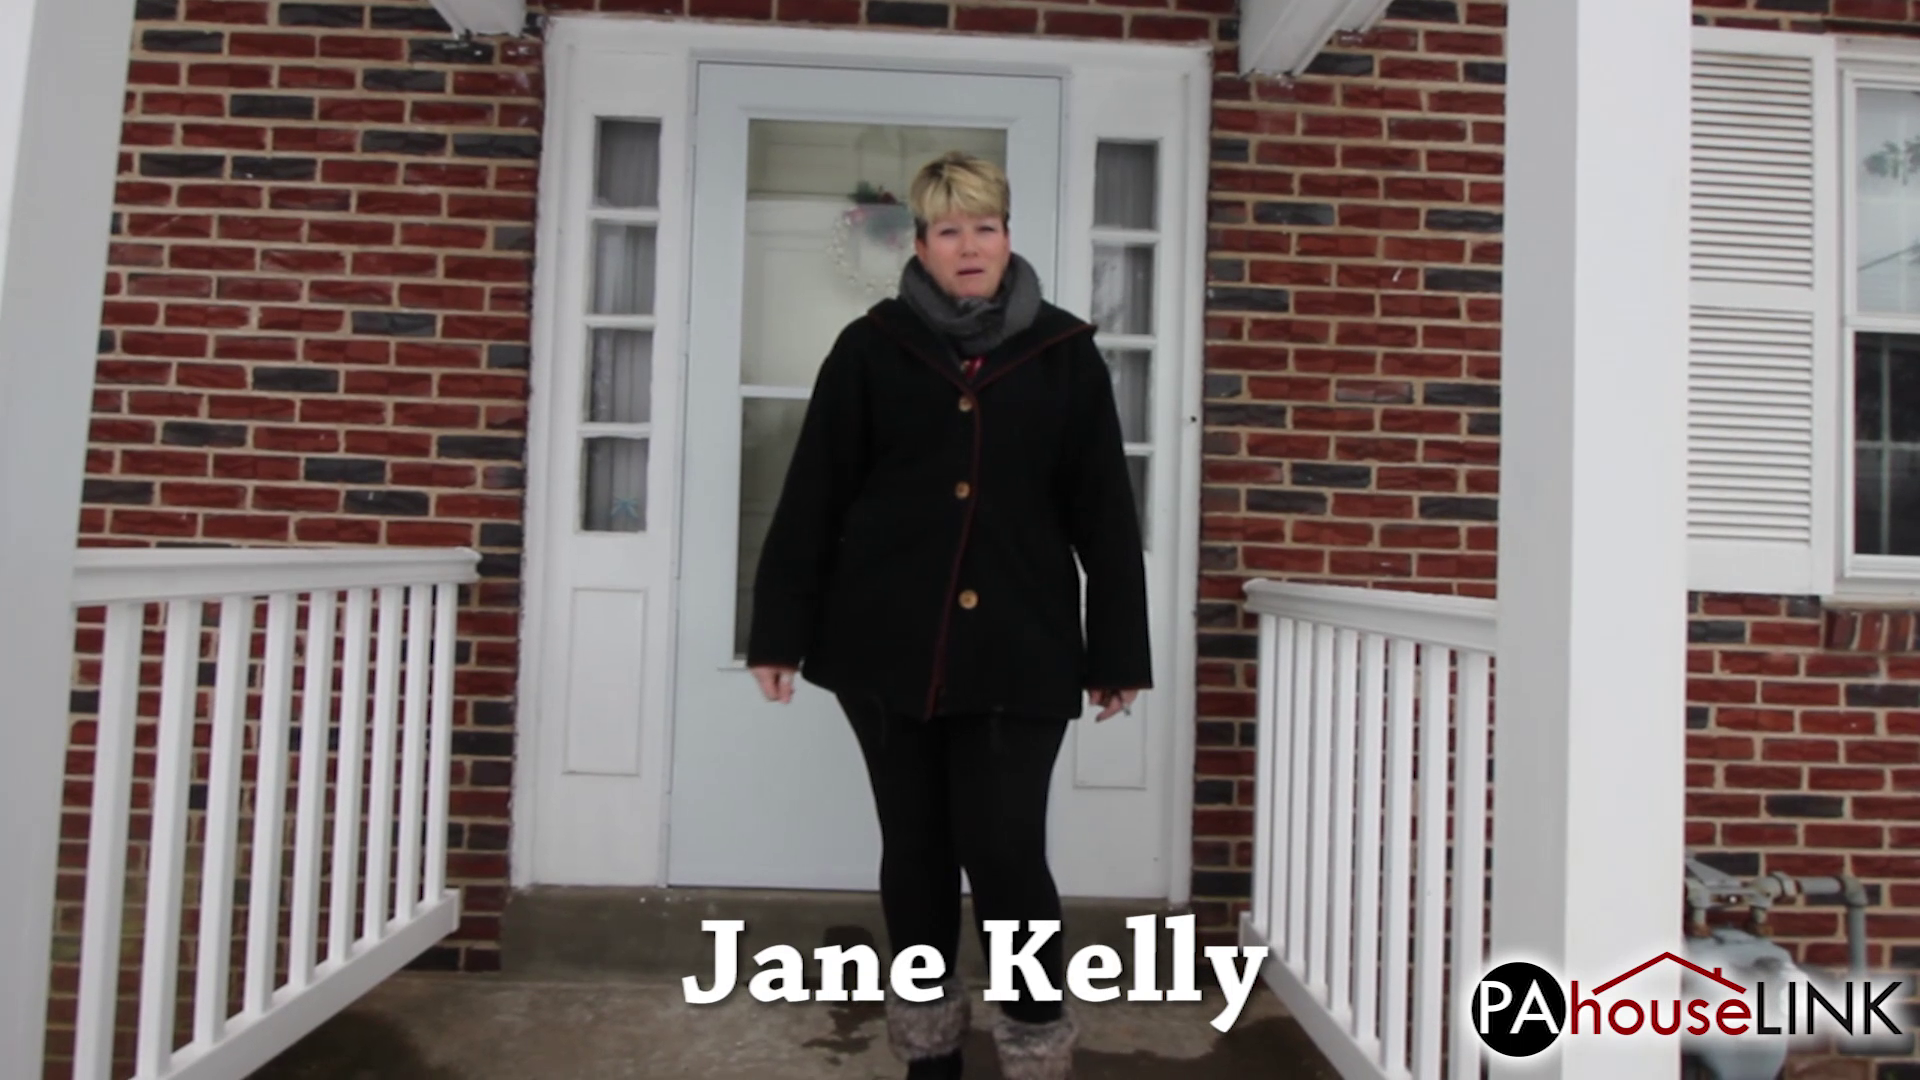 Jane Kelly Testimonial | Homes for rent in Willow Grove PA 19090